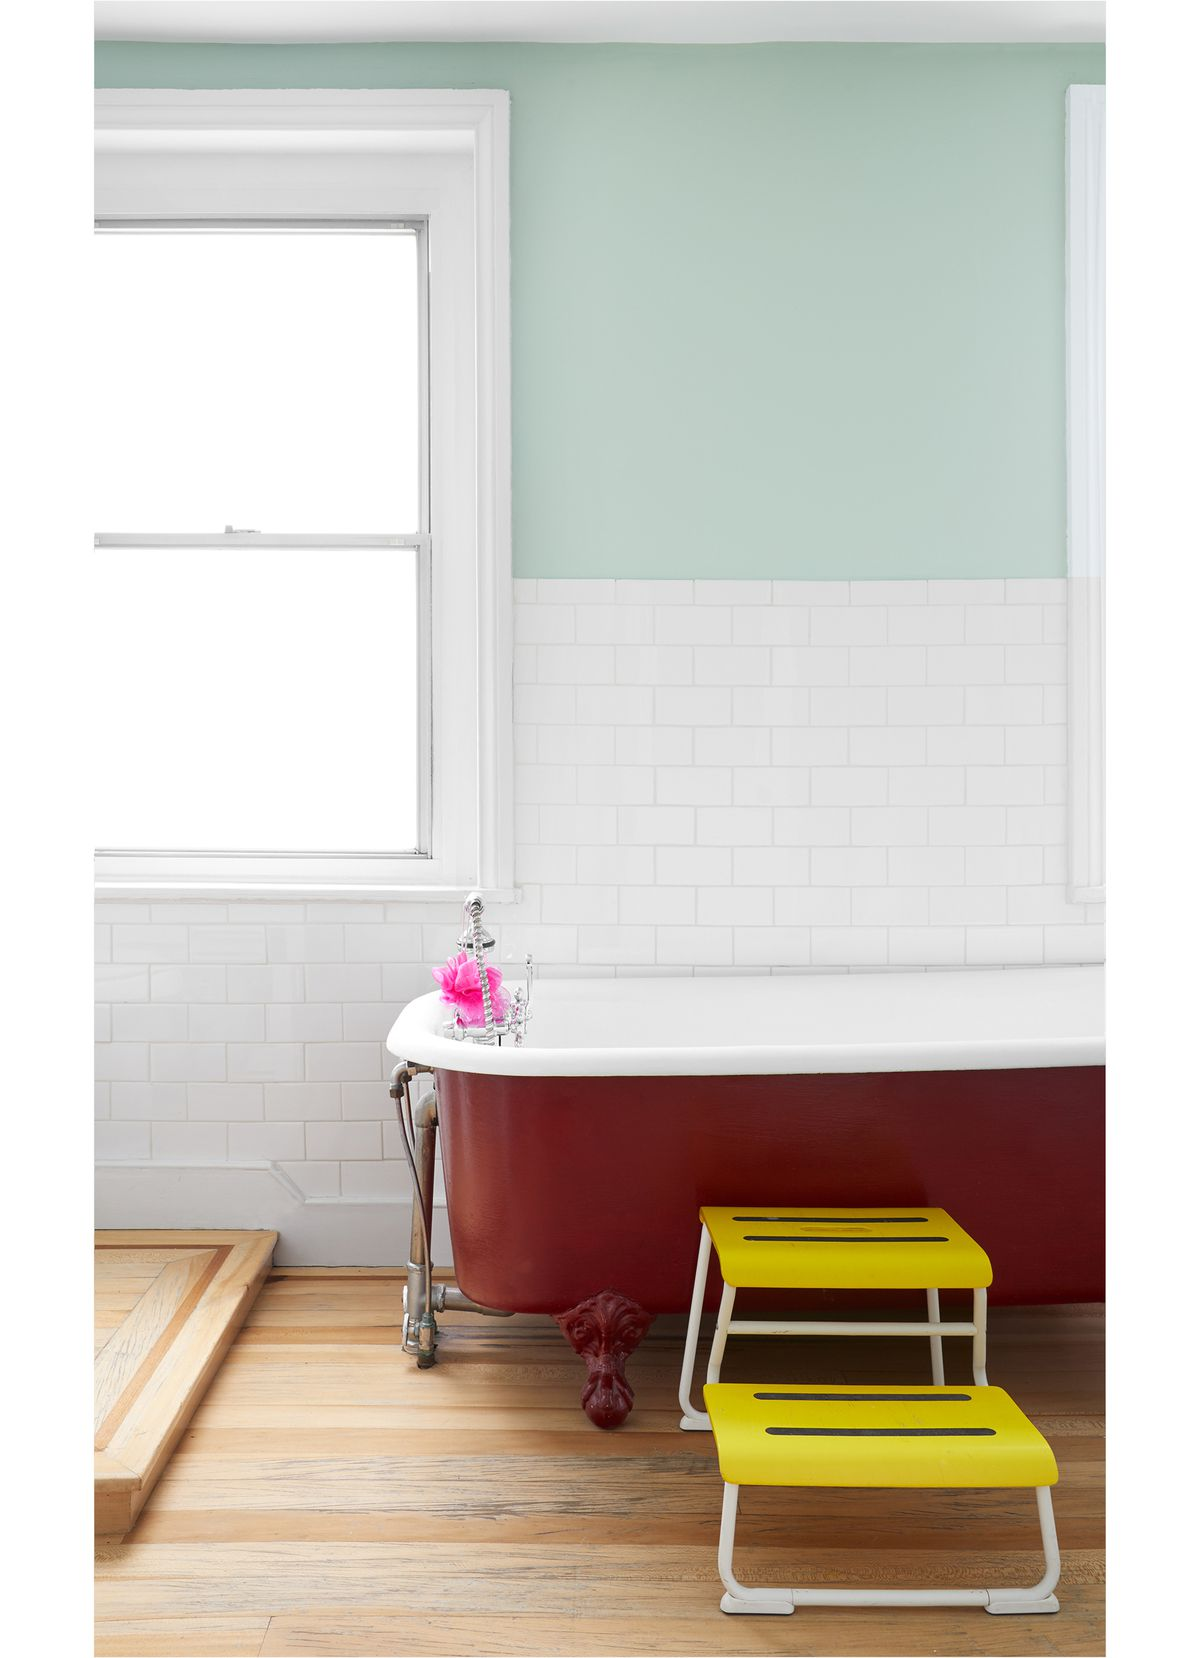 A bathroom. There is a bathtub which has a red exterior and a white interior. The walls of the bathroom are white tiles and light aqua blue. There is a yellow step stool in front of the bathtub. The floor is hardwood.